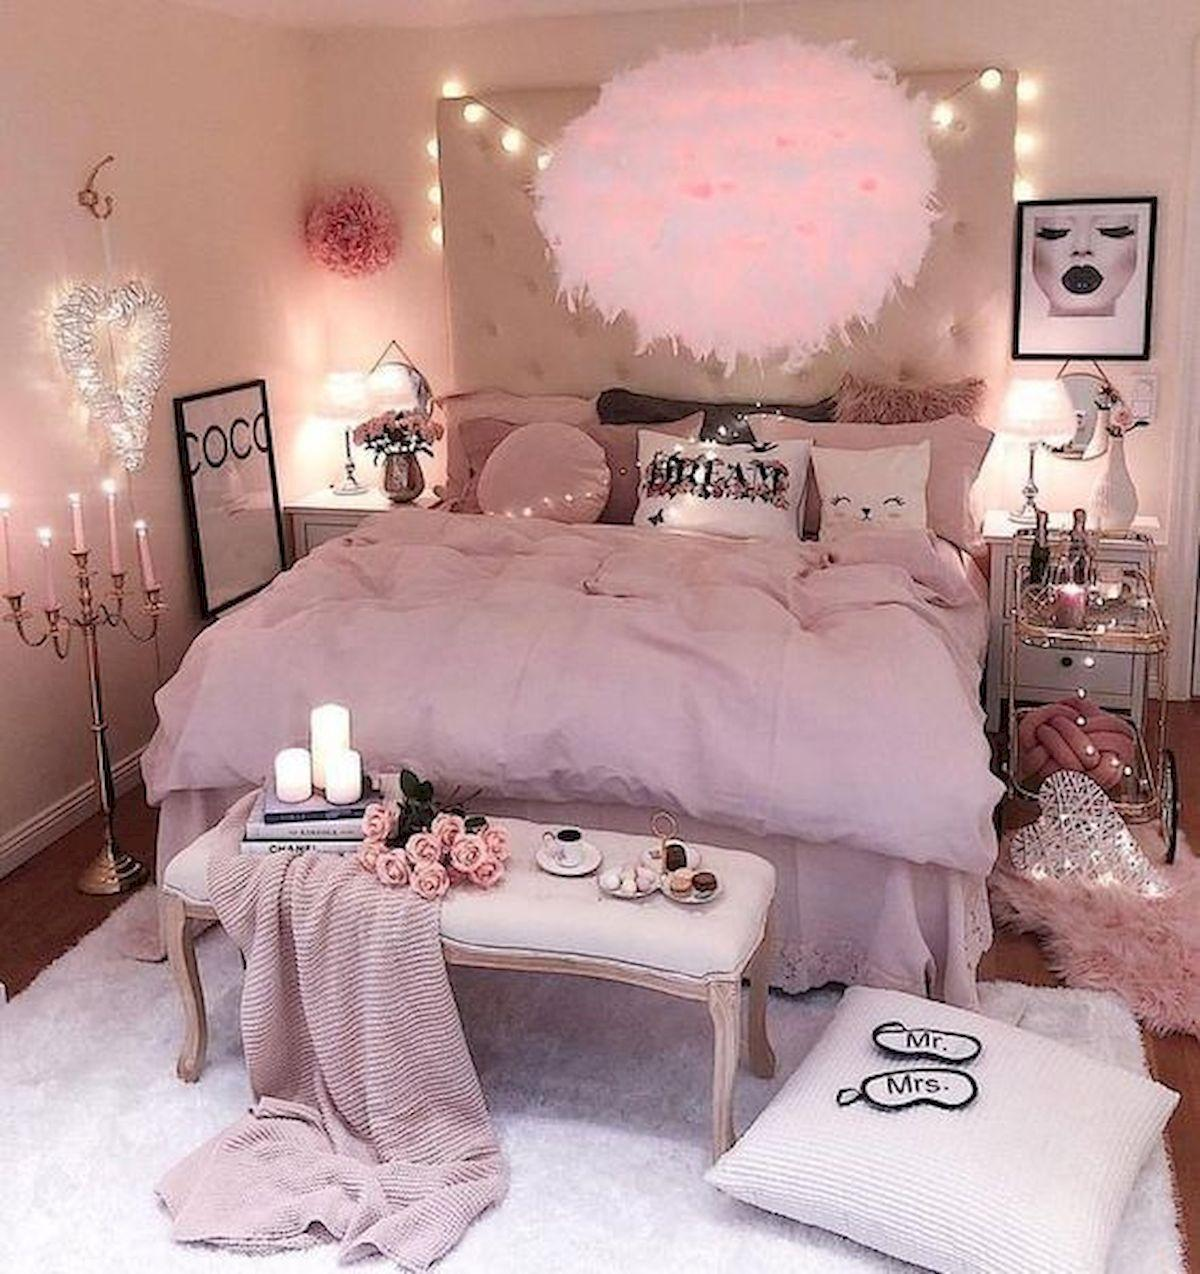 Cute and cozy bedroom for girl decorated for romantic night